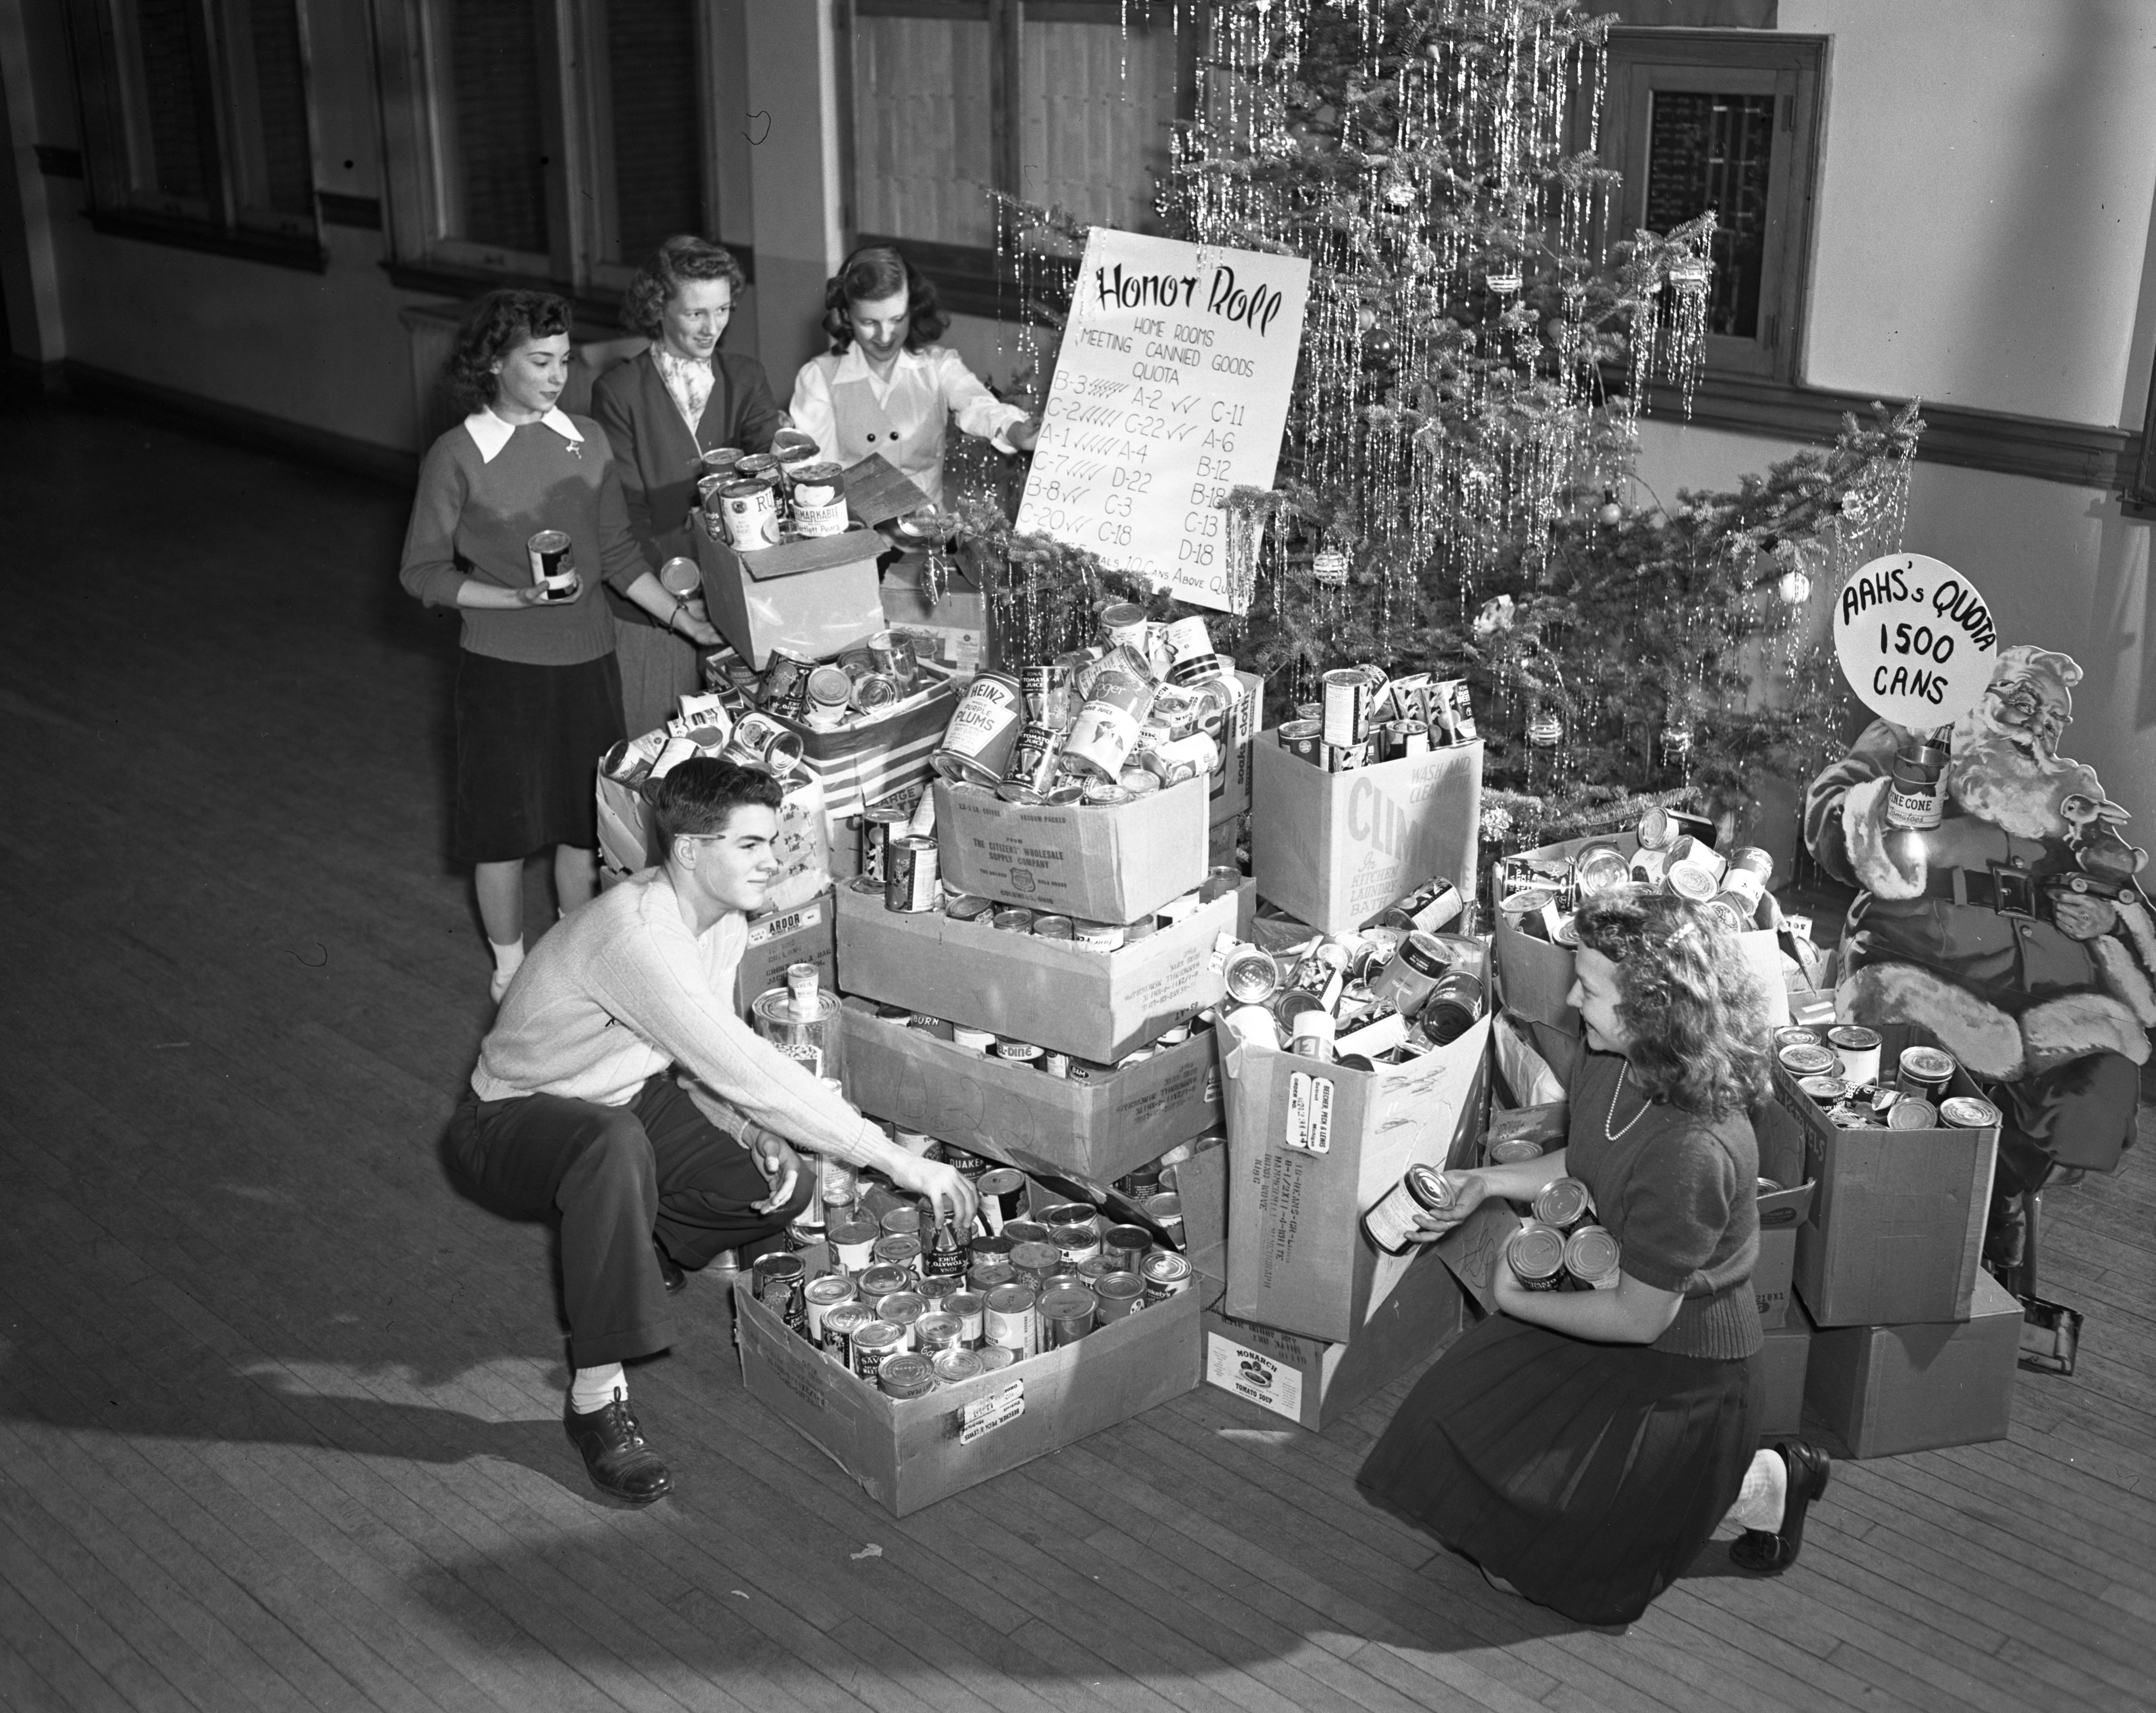 Ann Arbor High School students collect over 1900 canned goods as part of their European Relief campaign, December 1947 image